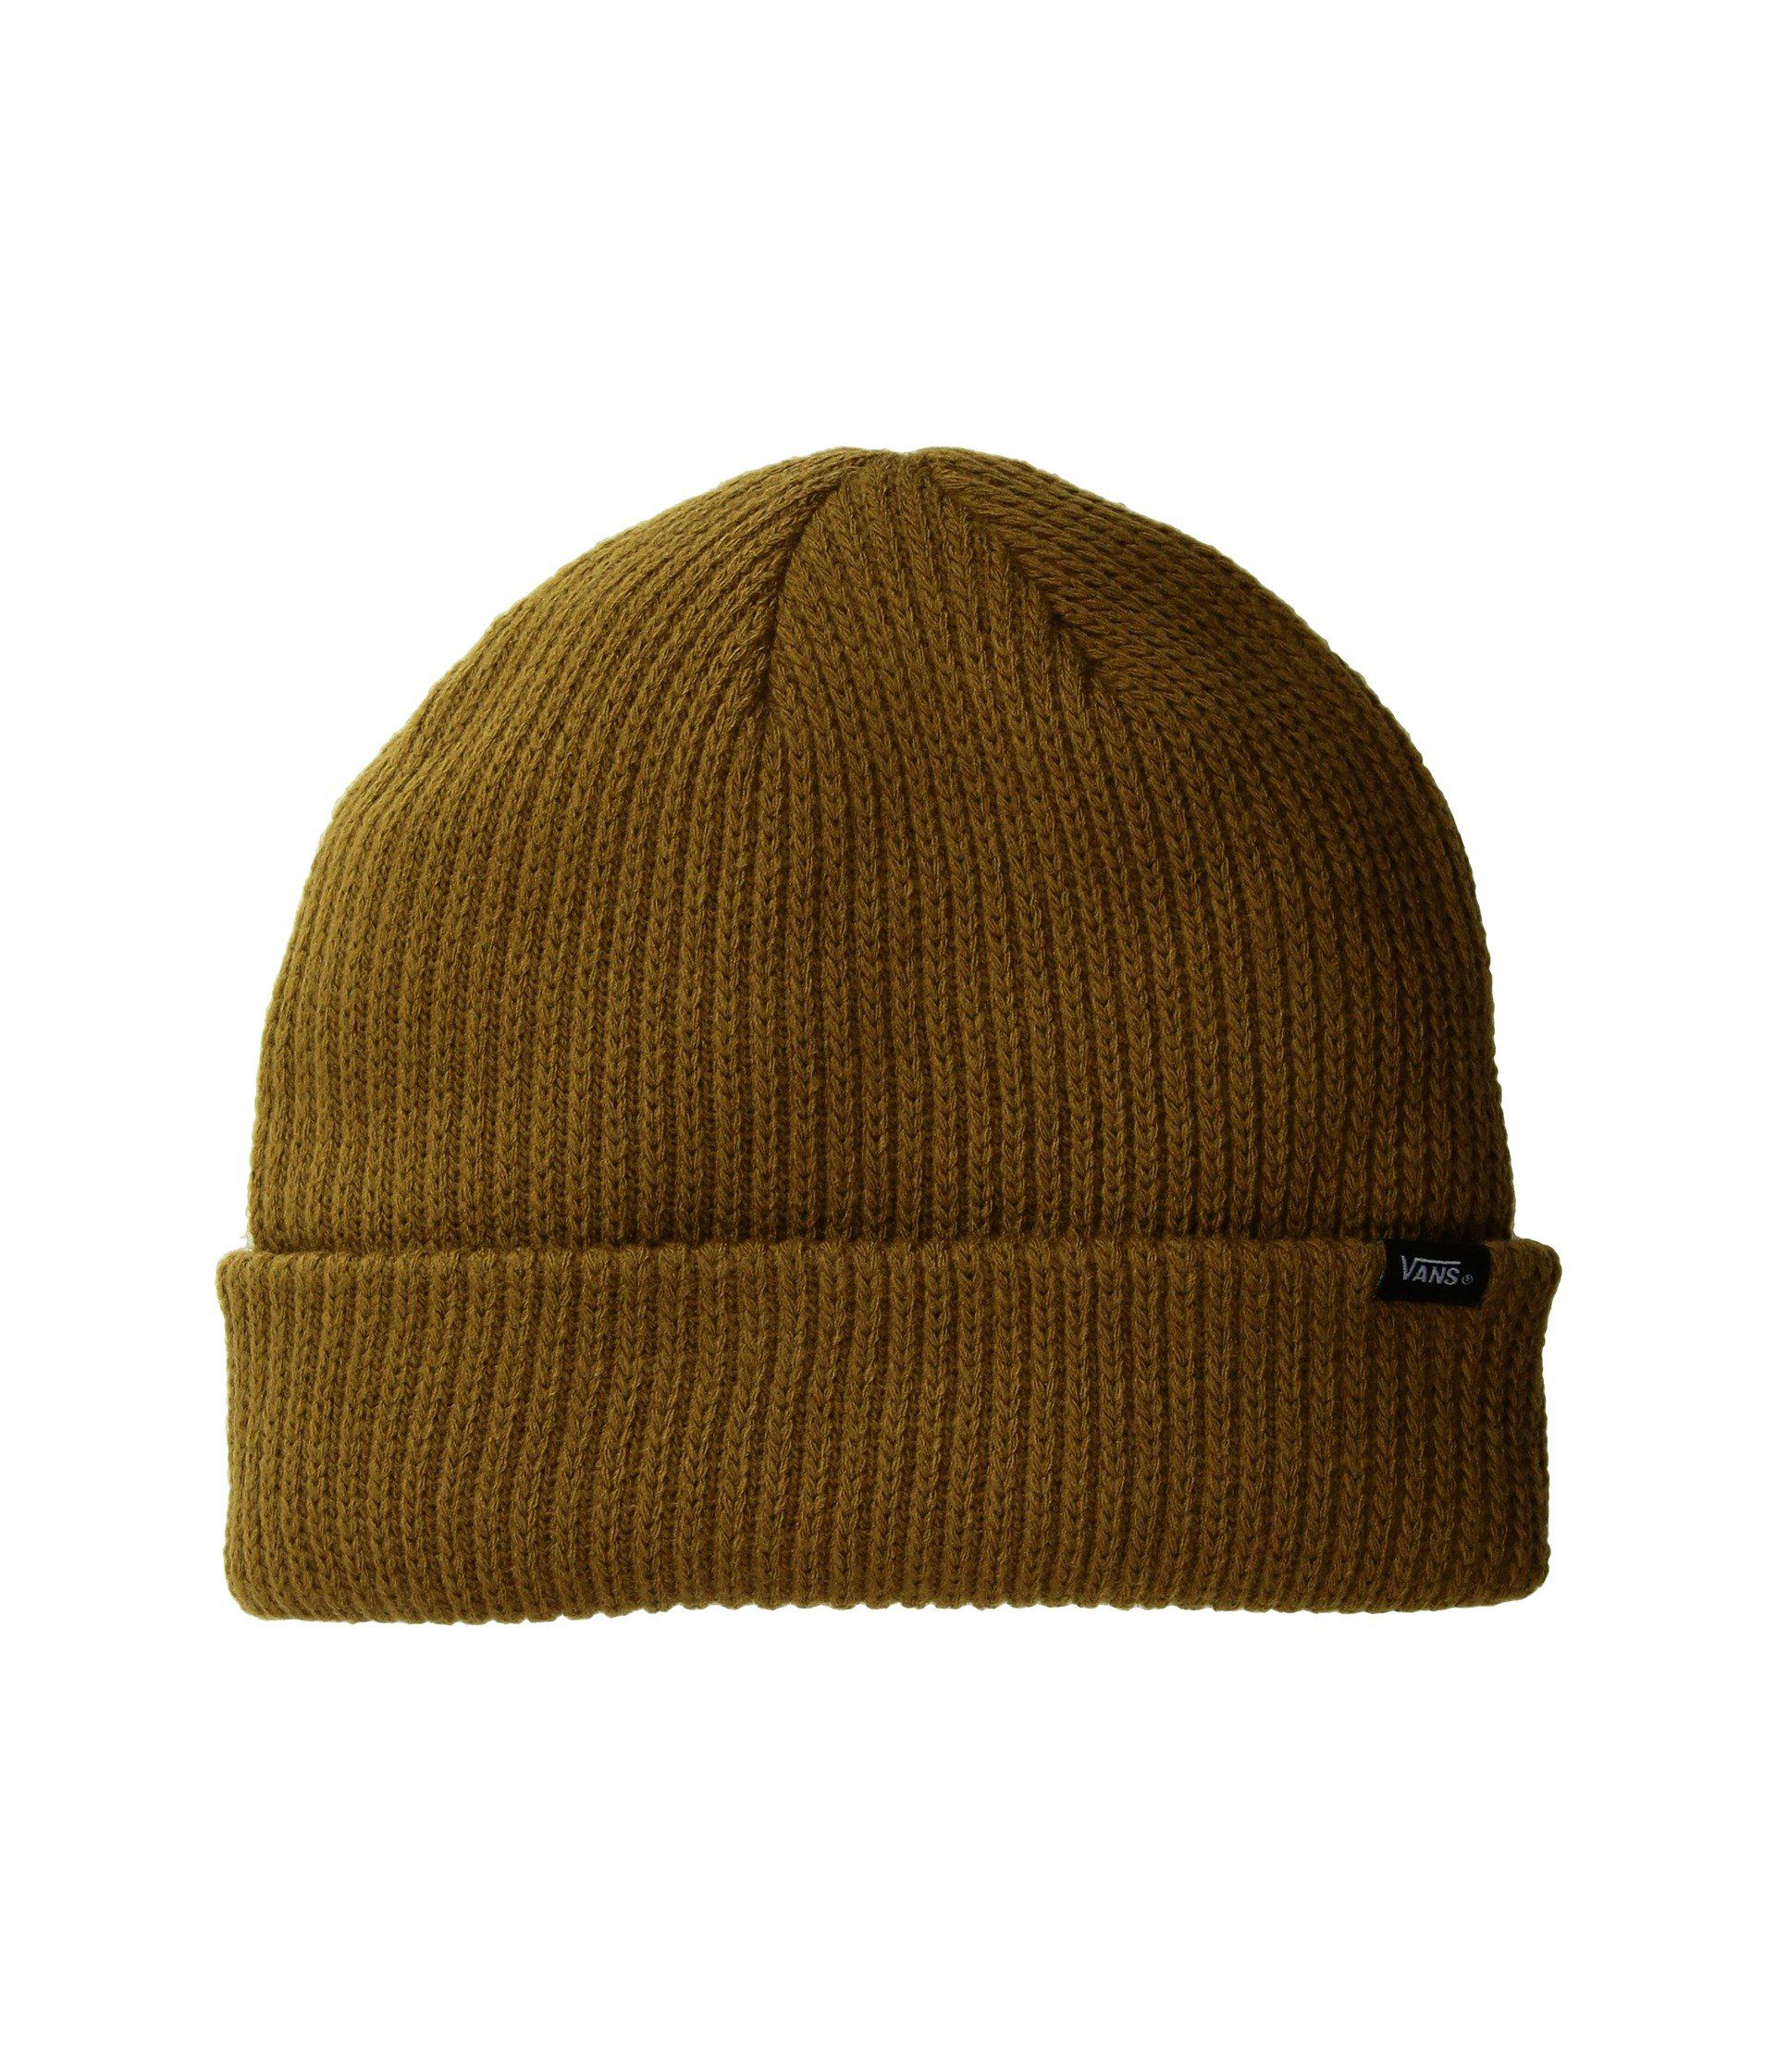 05cce2b3edf Lyst - Vans Core Basics Beanie in Green for Men